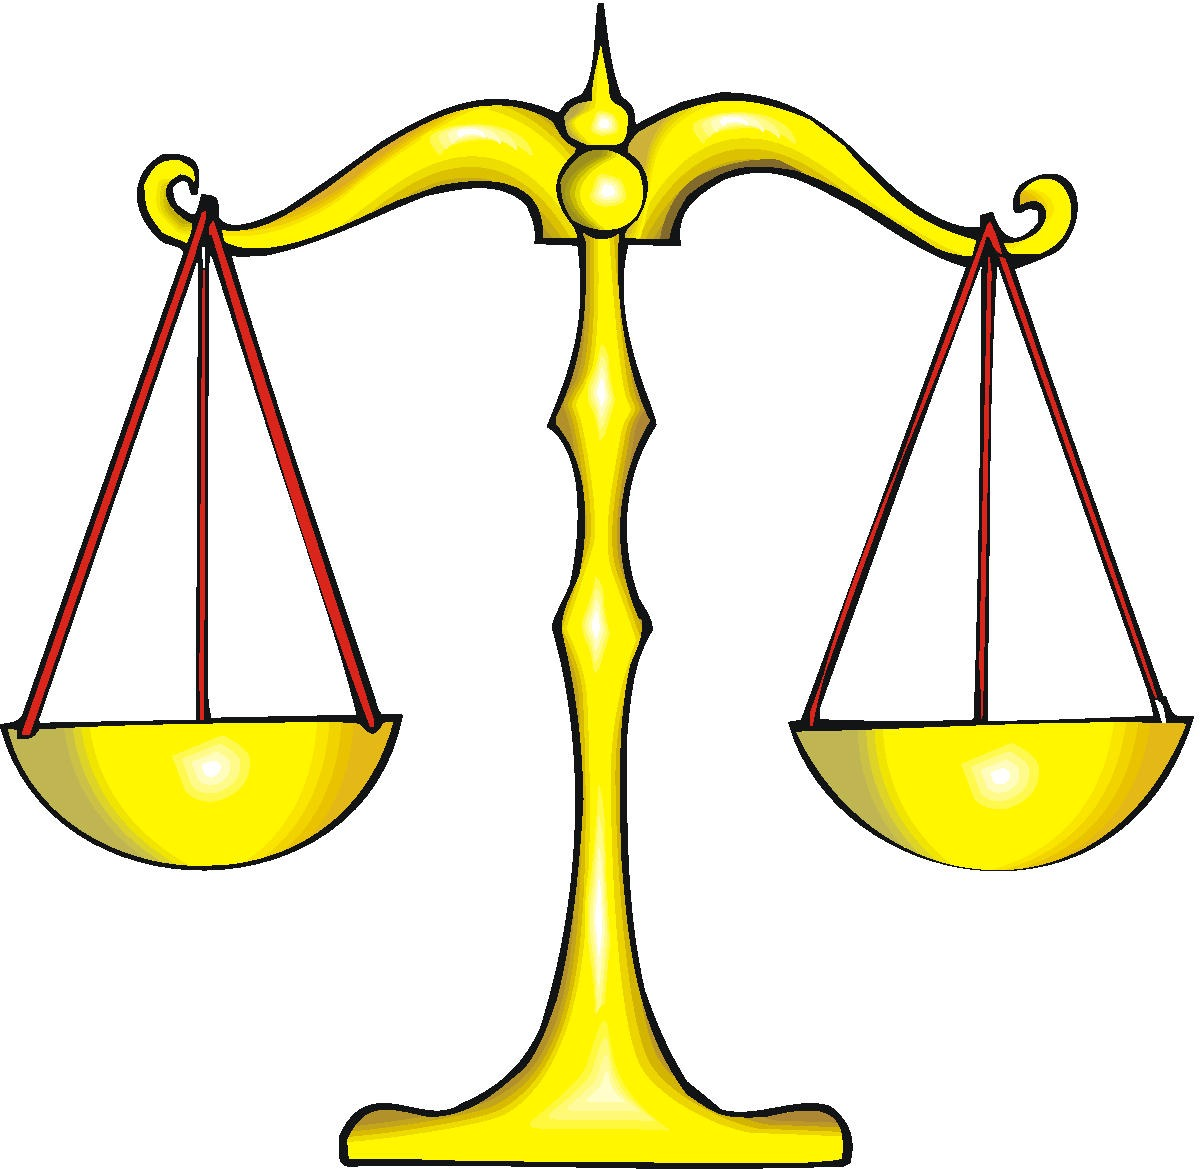 35 Picture Of Balance Scale Free Clipart-35 Picture Of Balance Scale Free Cliparts That You Can Download To You-1